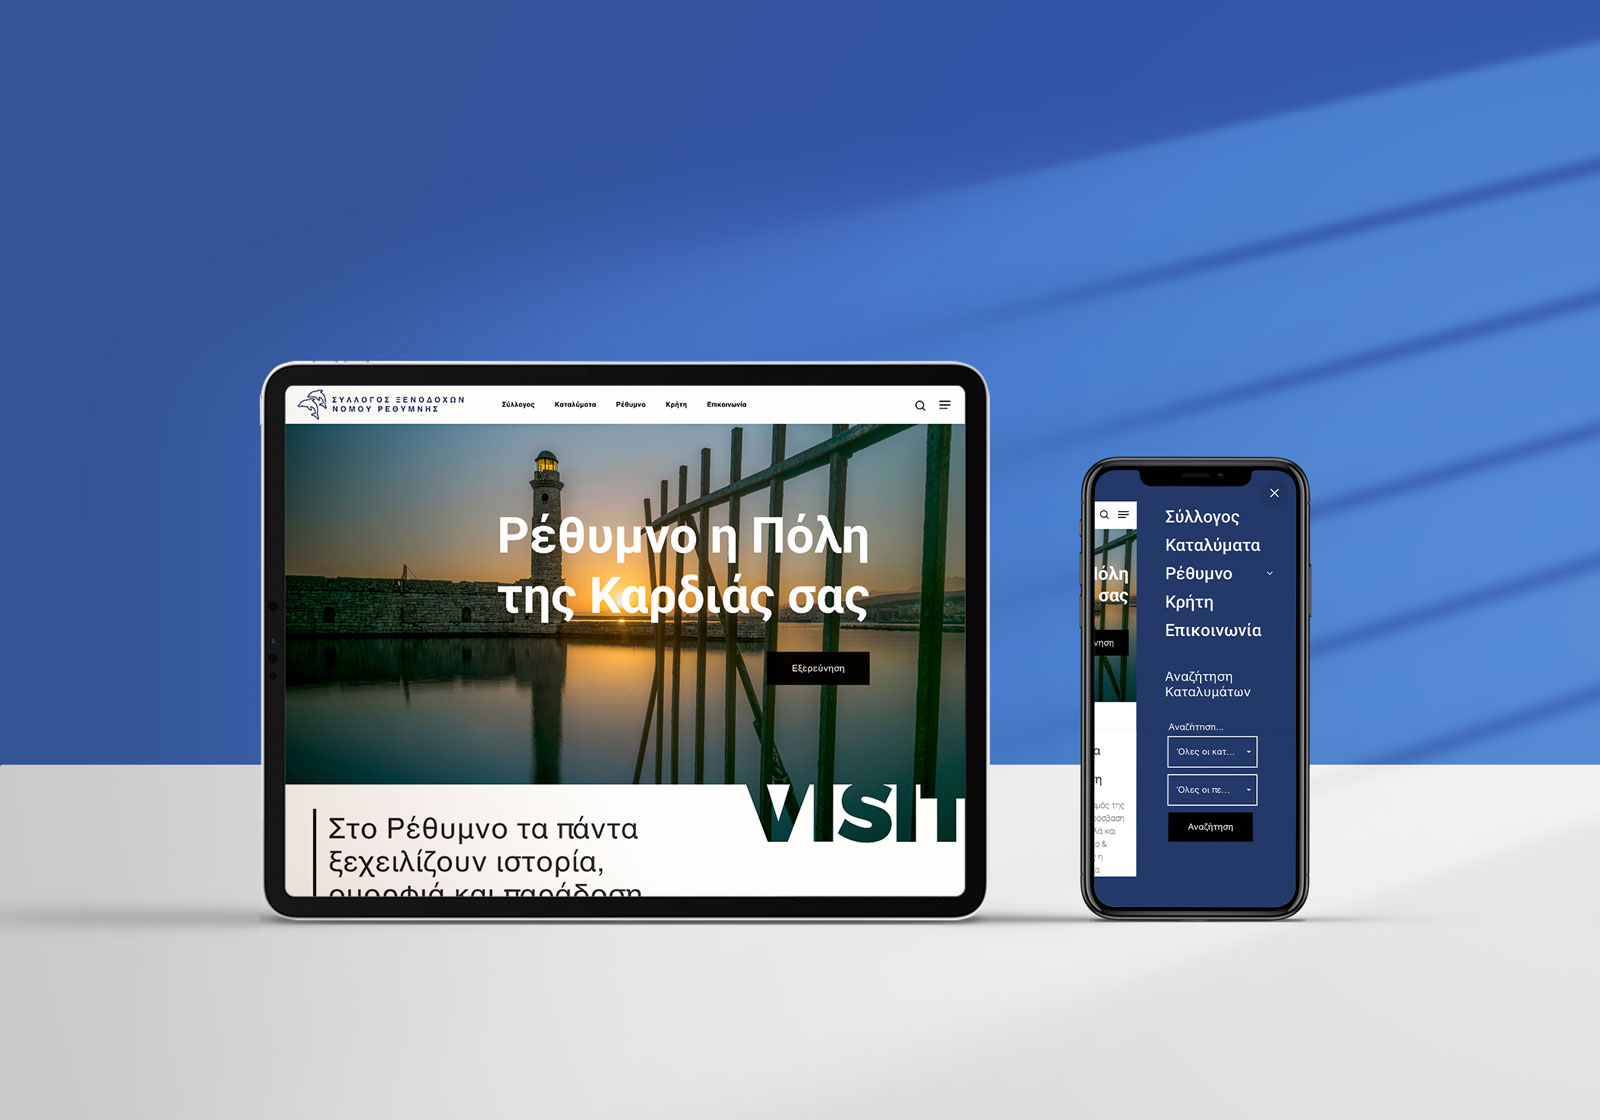 rethymno hotels site and templates